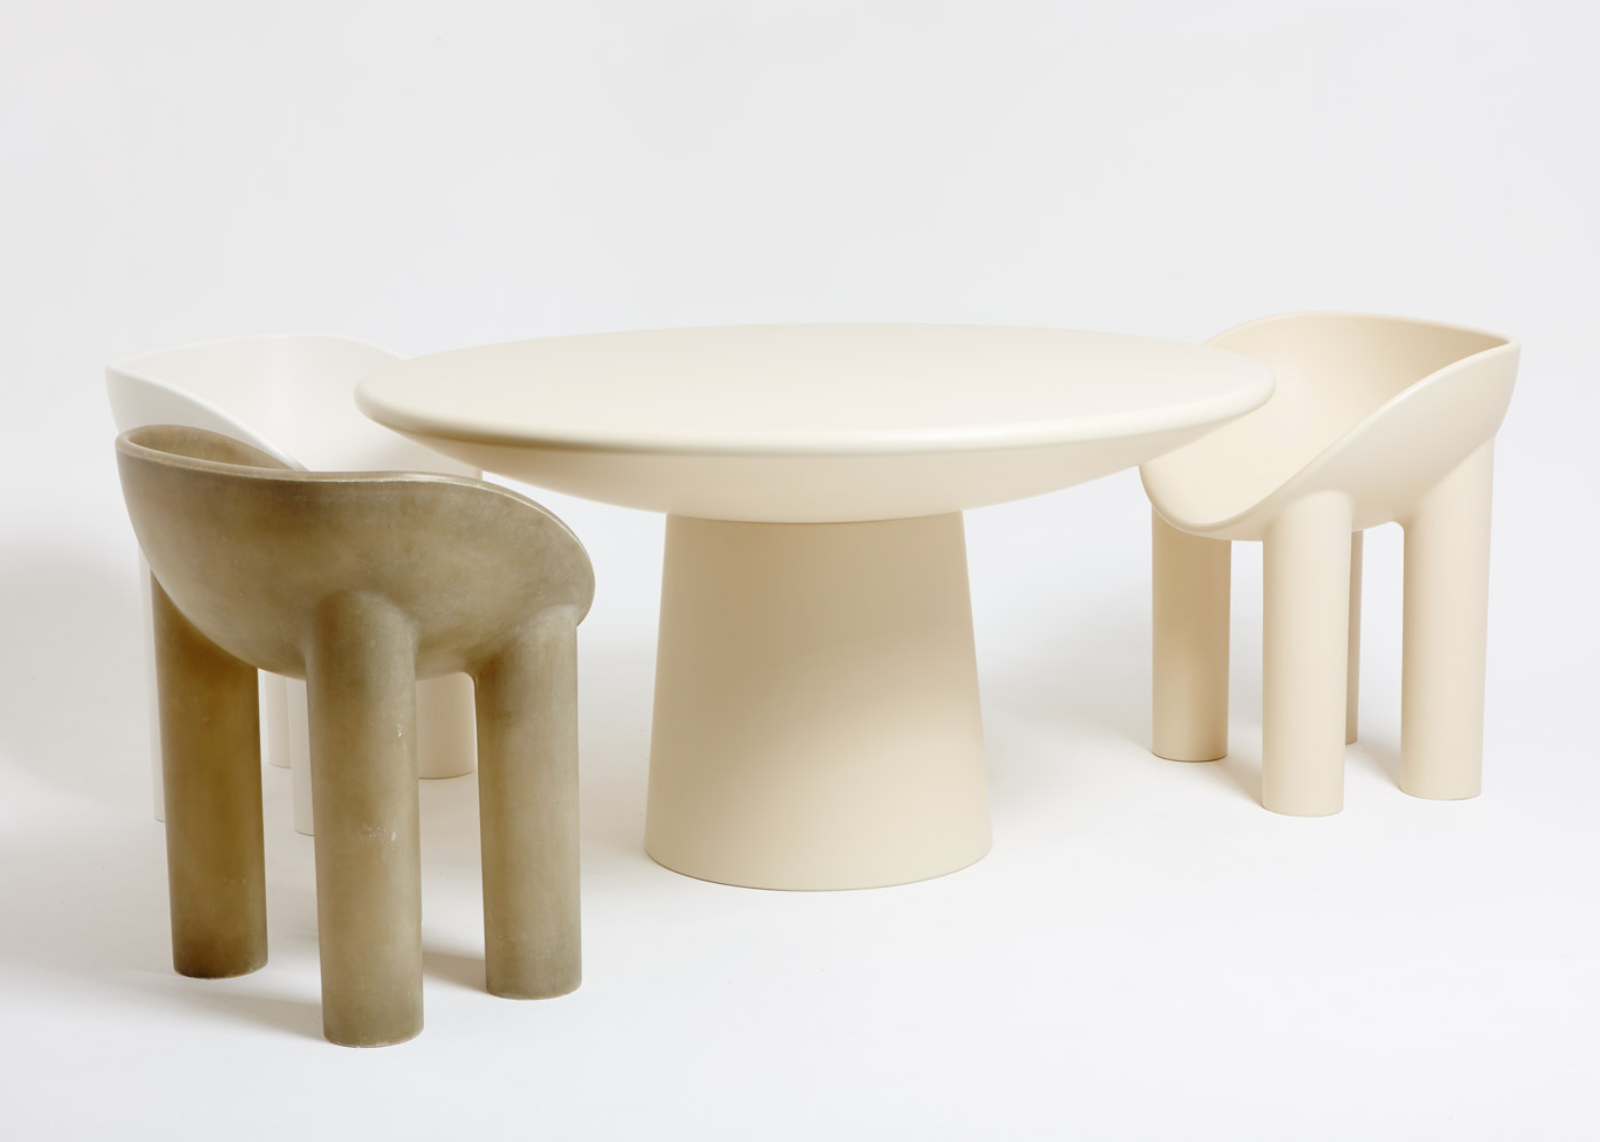 The 'Roly Poly' dining chair and table by Faye Toogood. Part of what I've dubbed the Modern Primitive movement.